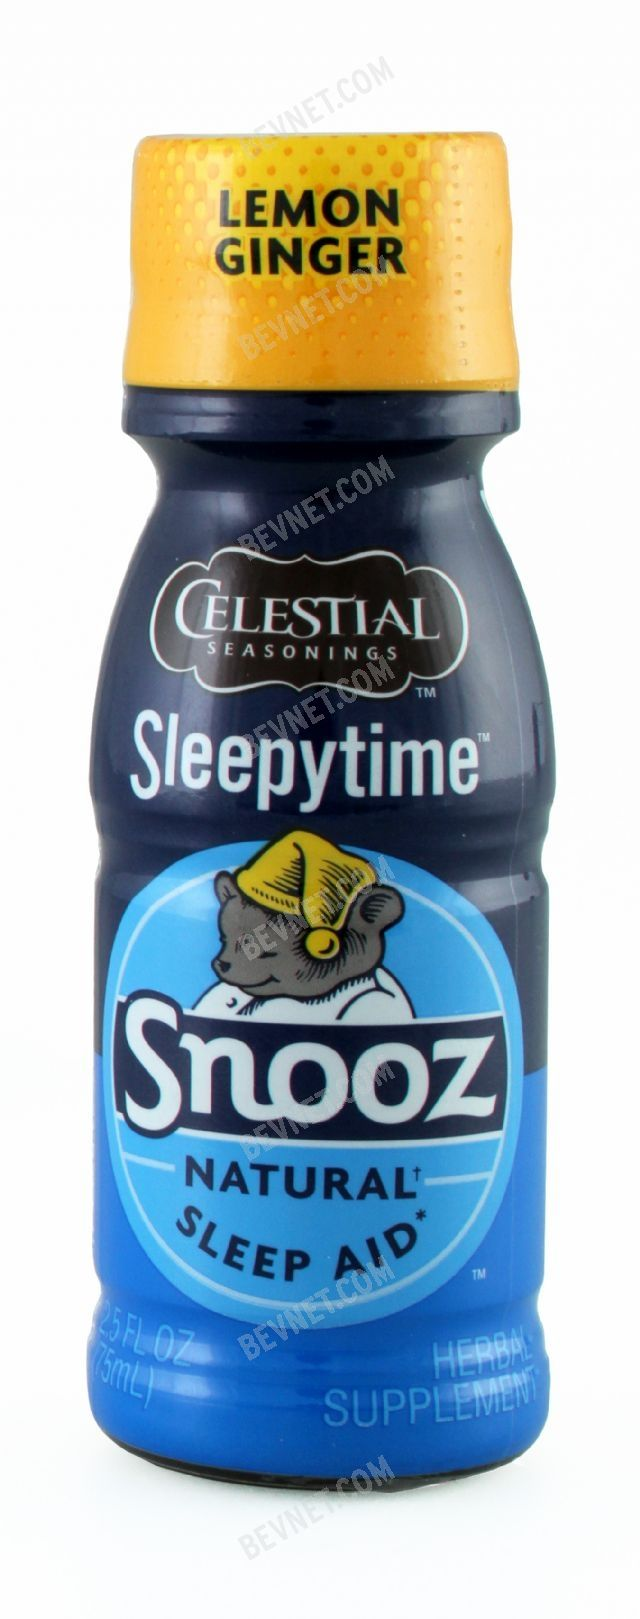 Celestial Seasonings Sleepytime Snooz: